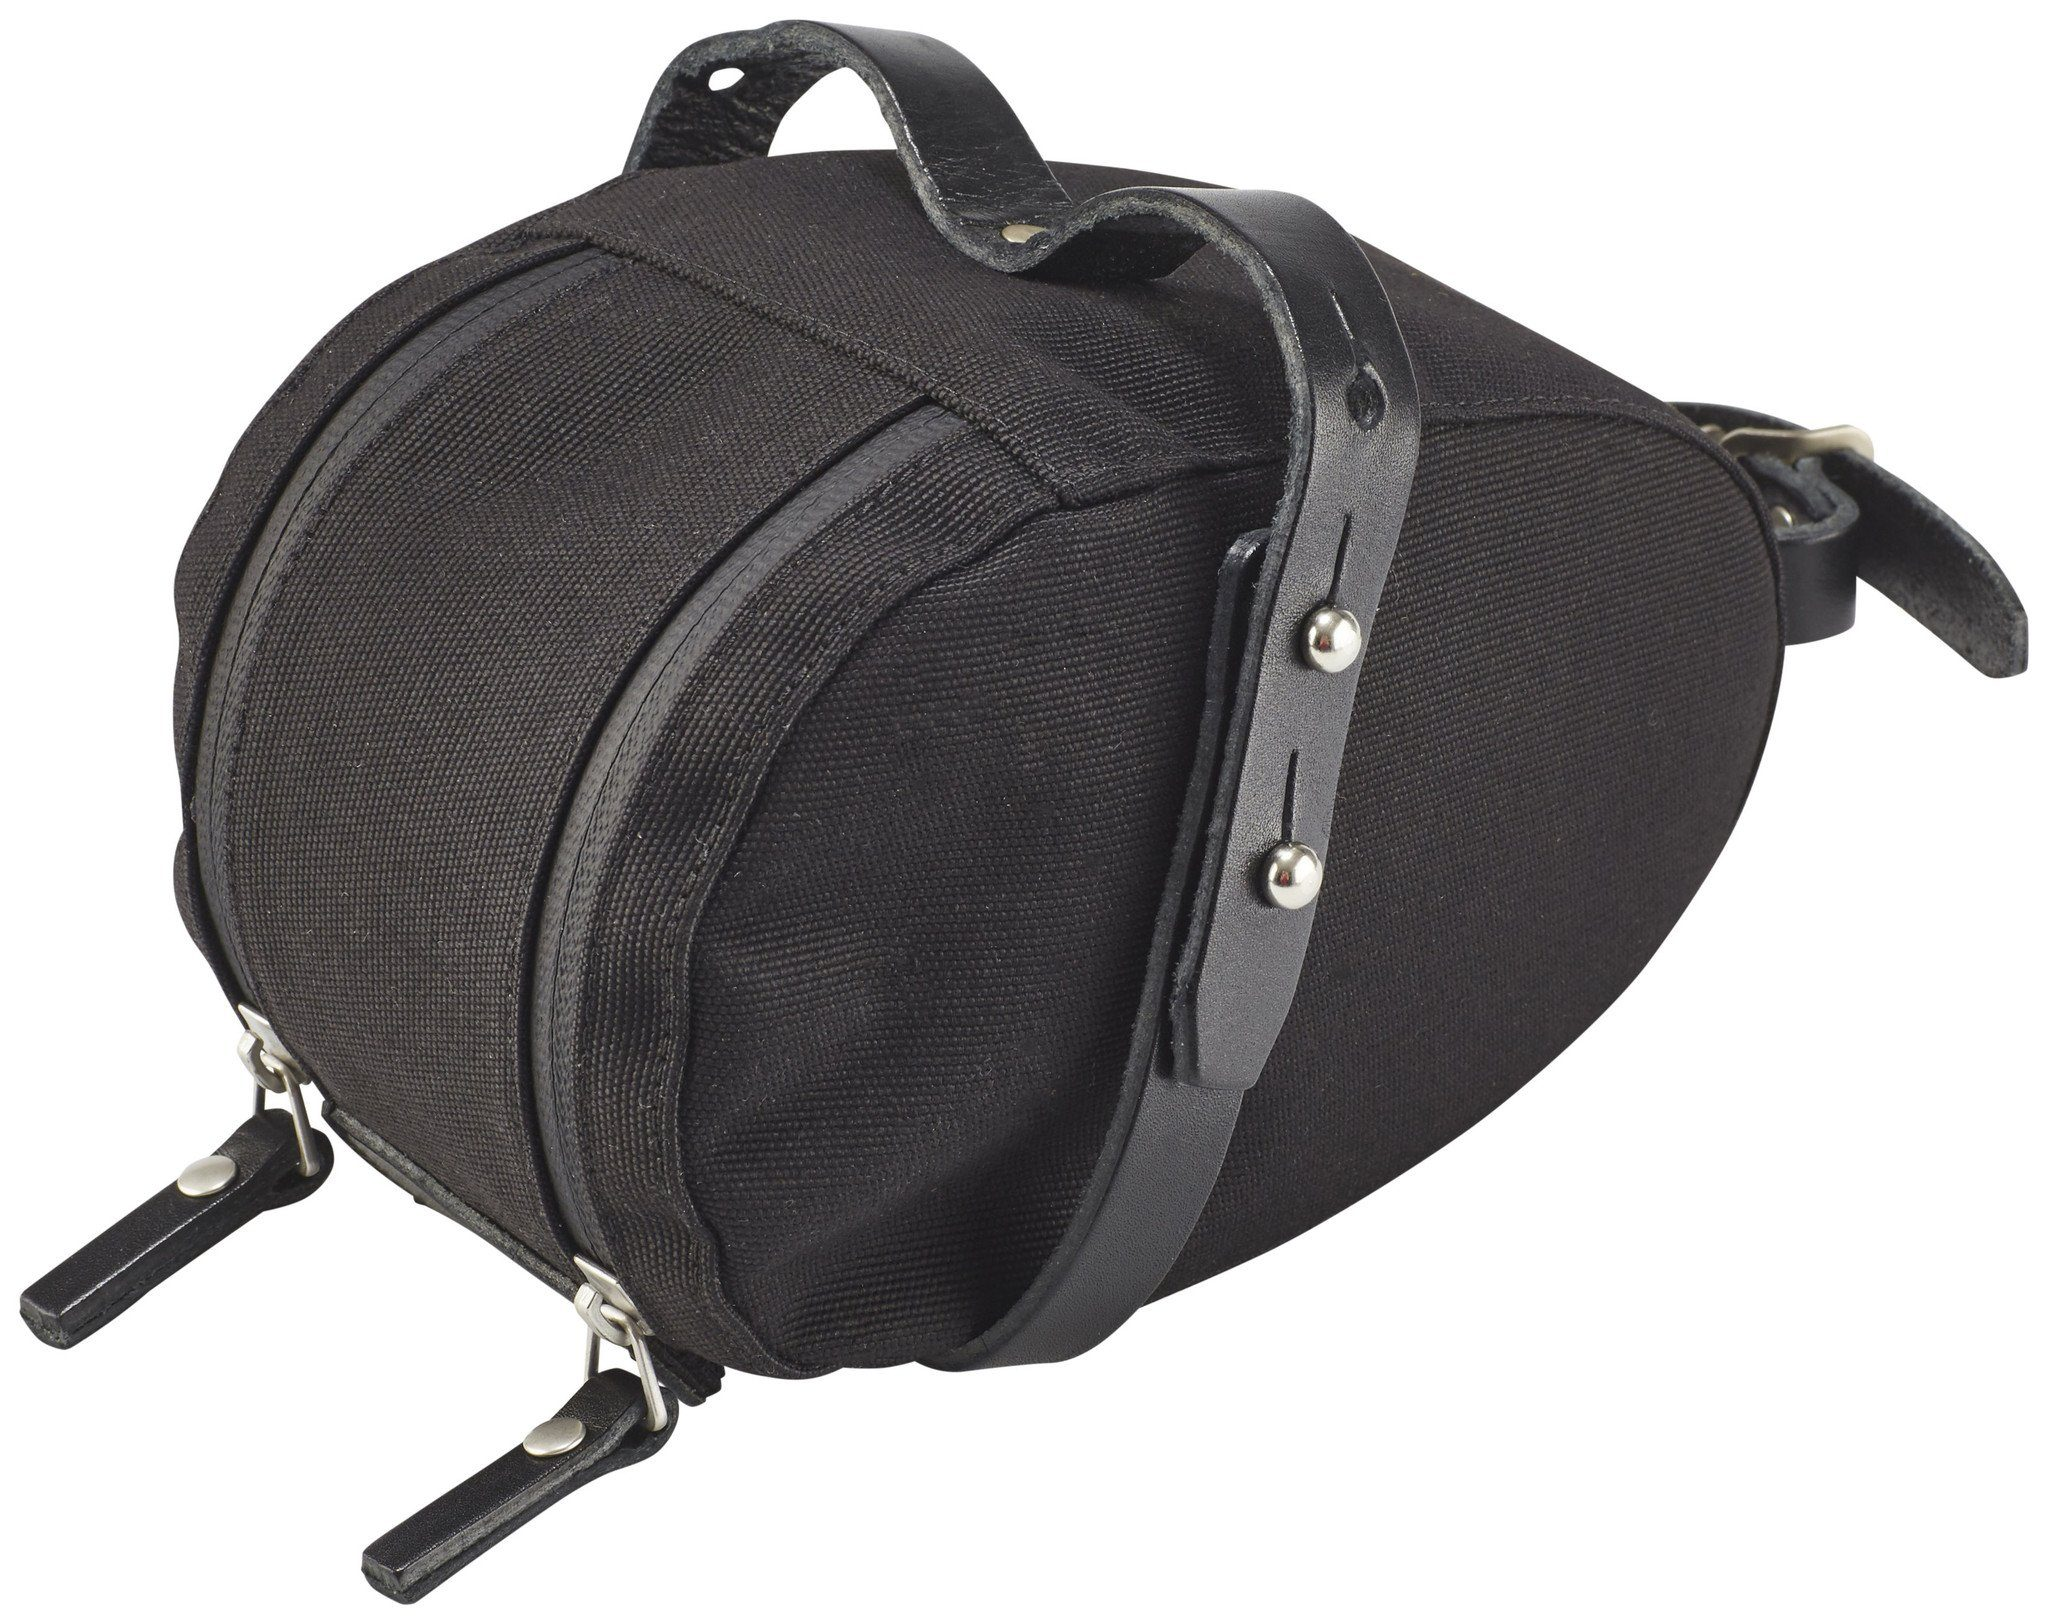 Brooks Fahrradtasche »Isle of Wight Saddle Bag Medium«